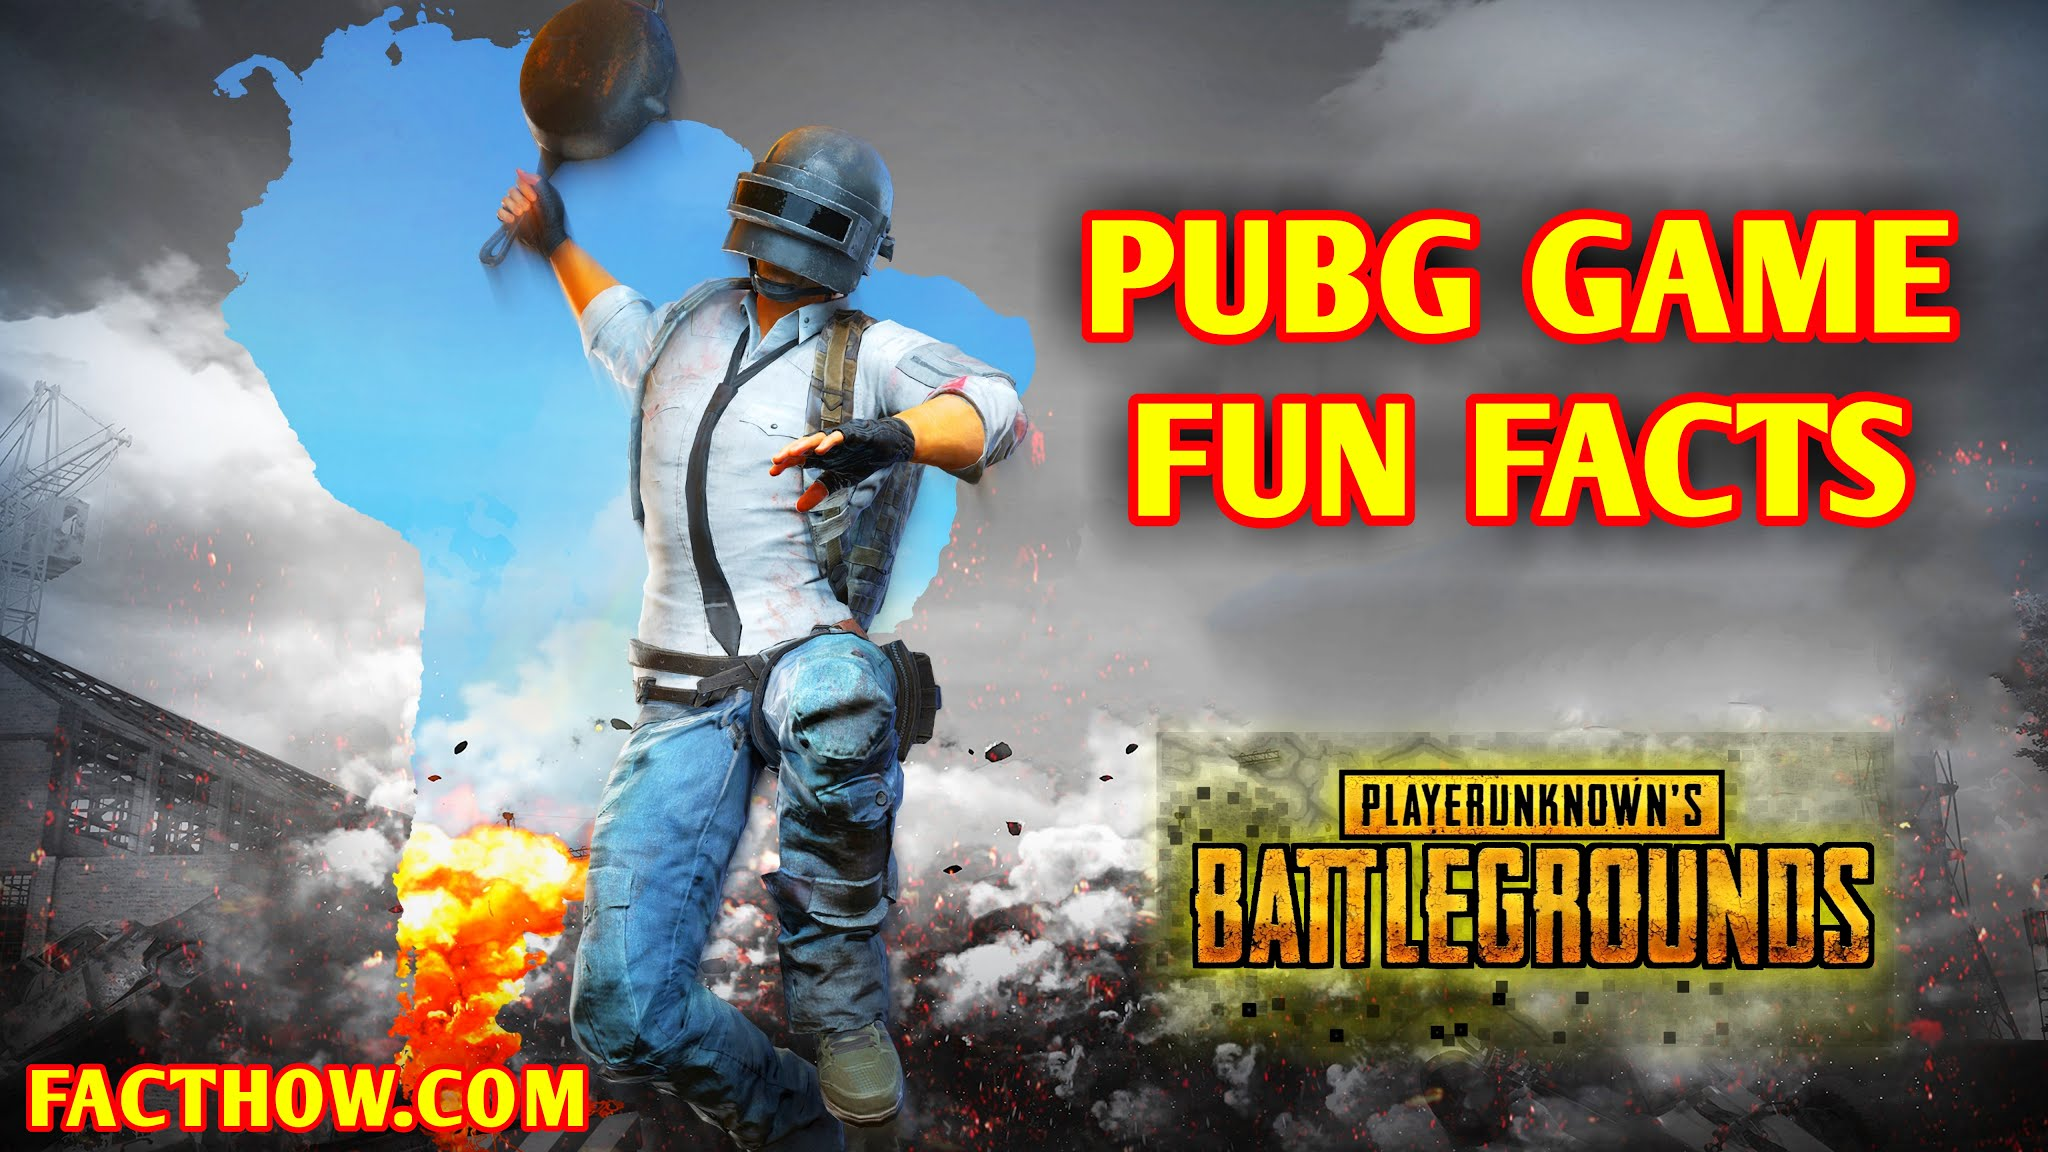 facts about pubg